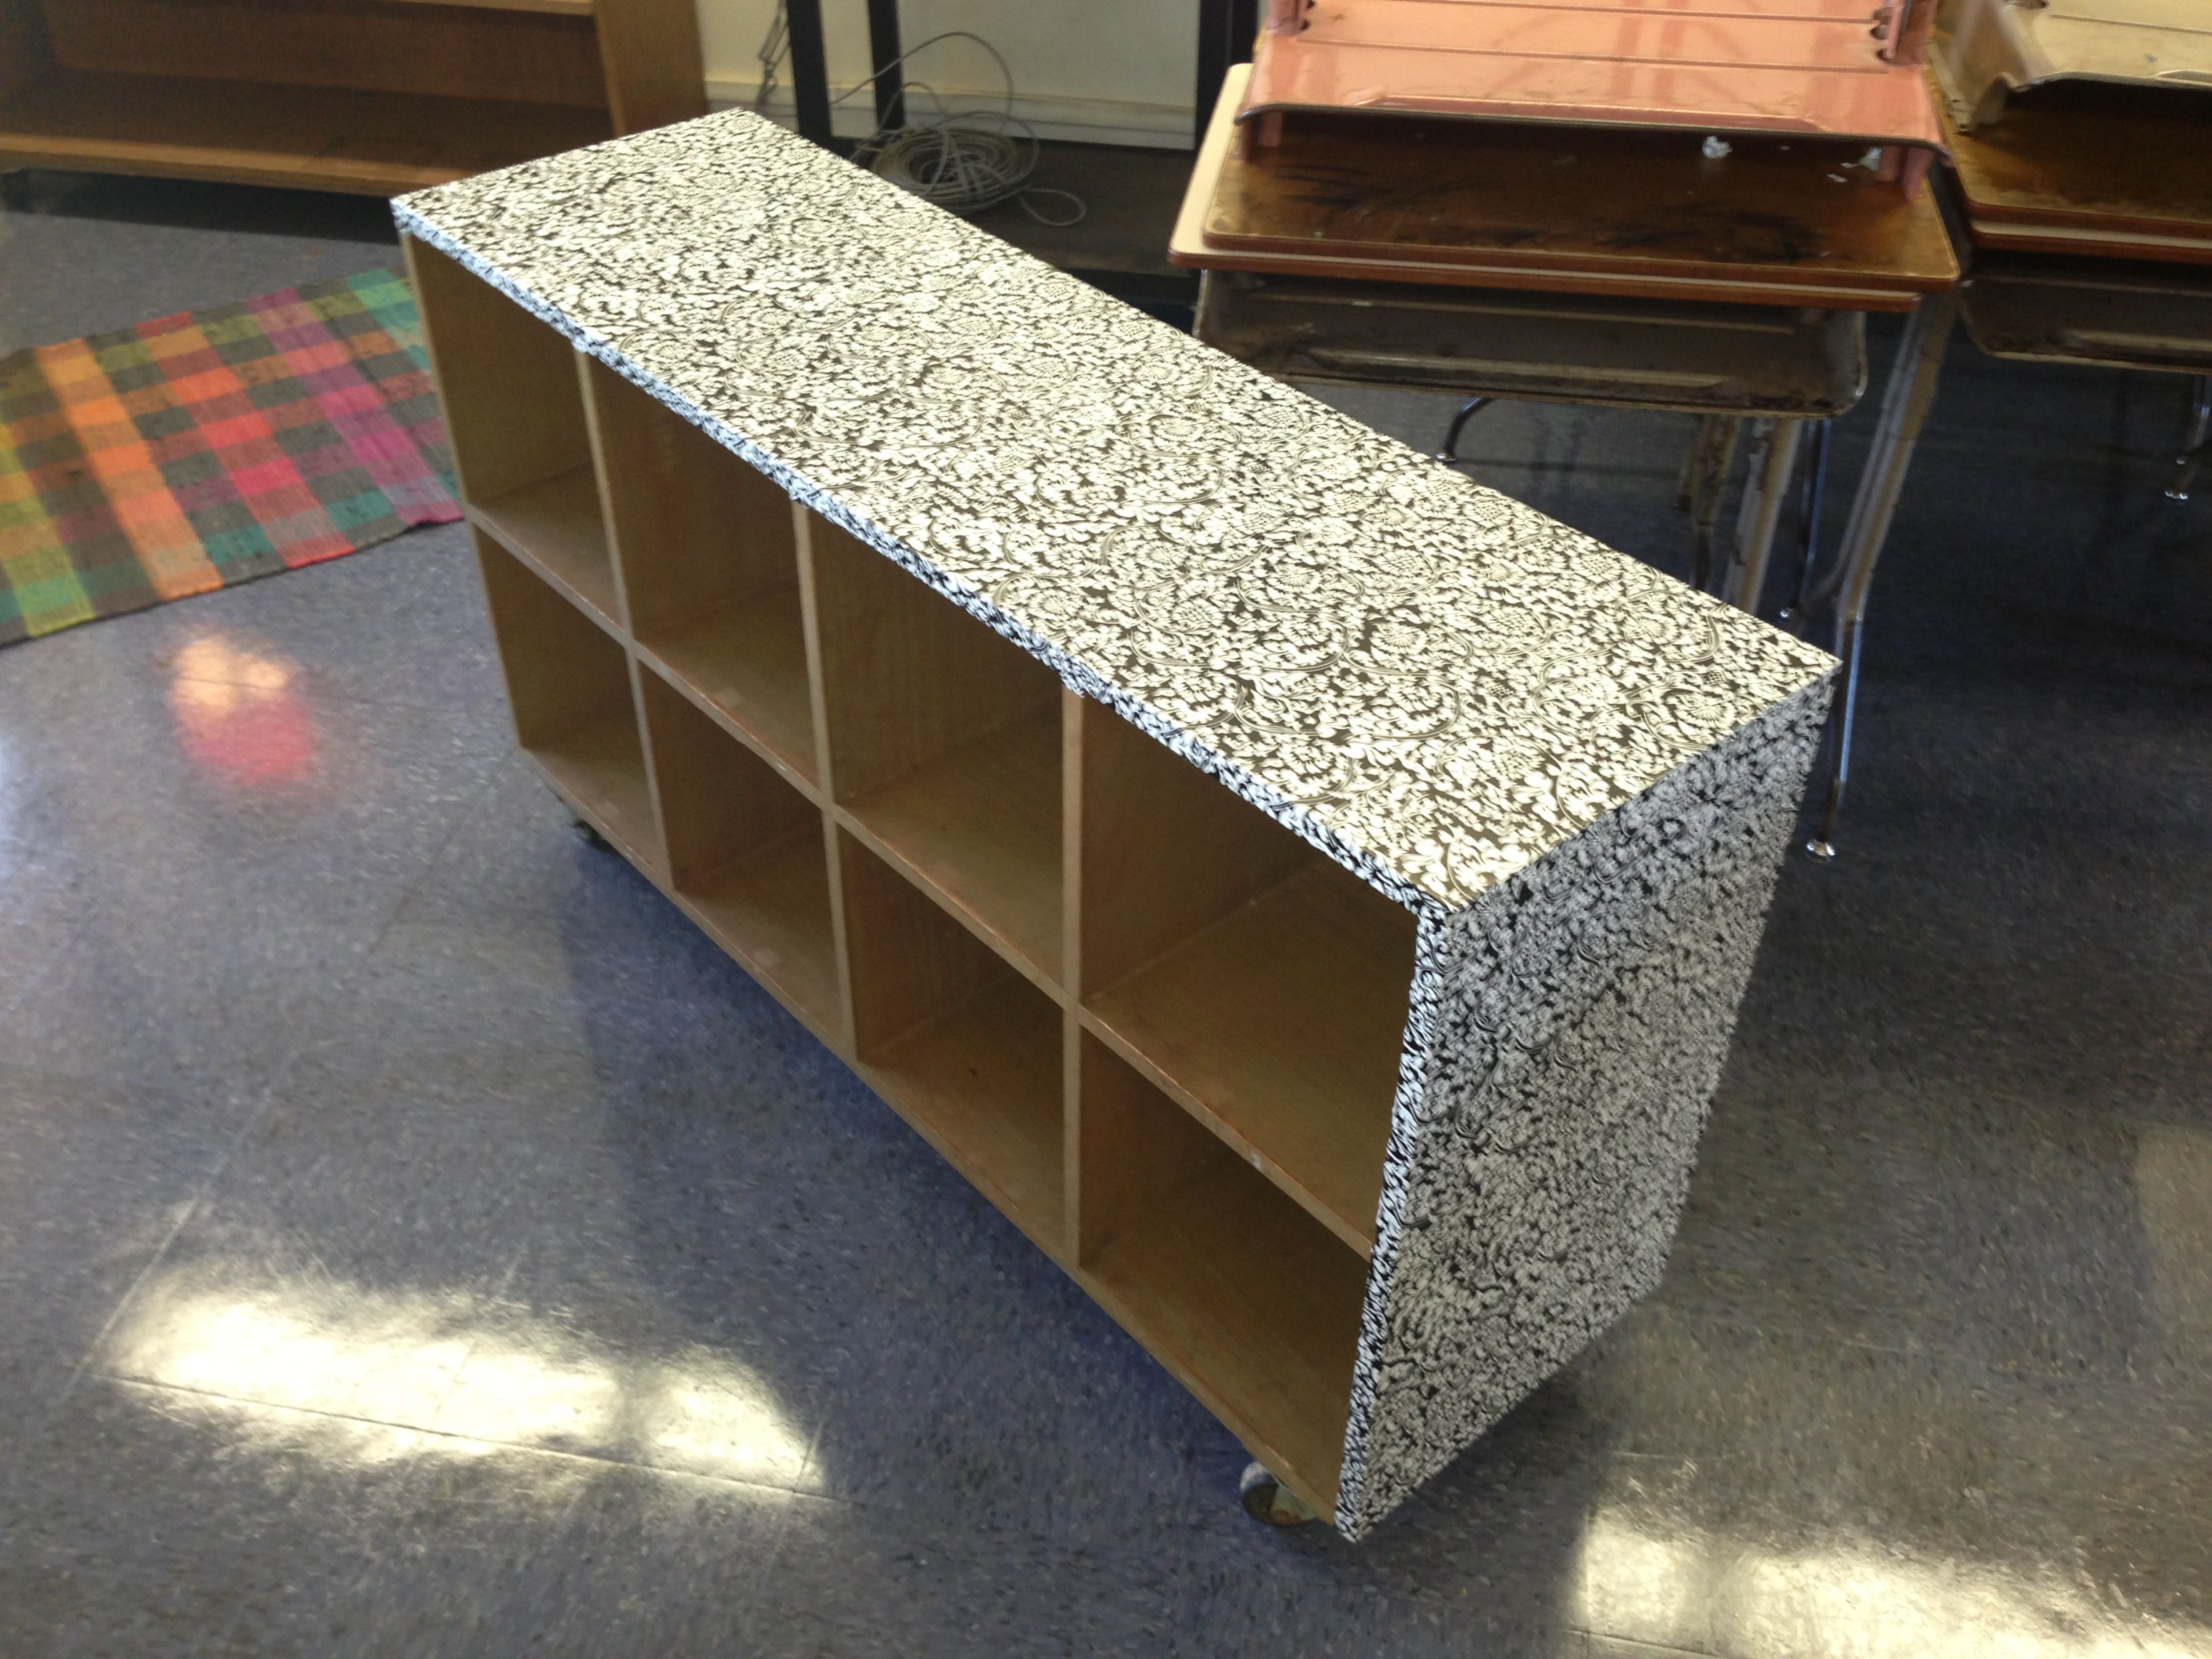 for all my teacher friends cover your classroom furniture cover your classroom furniture contact paper